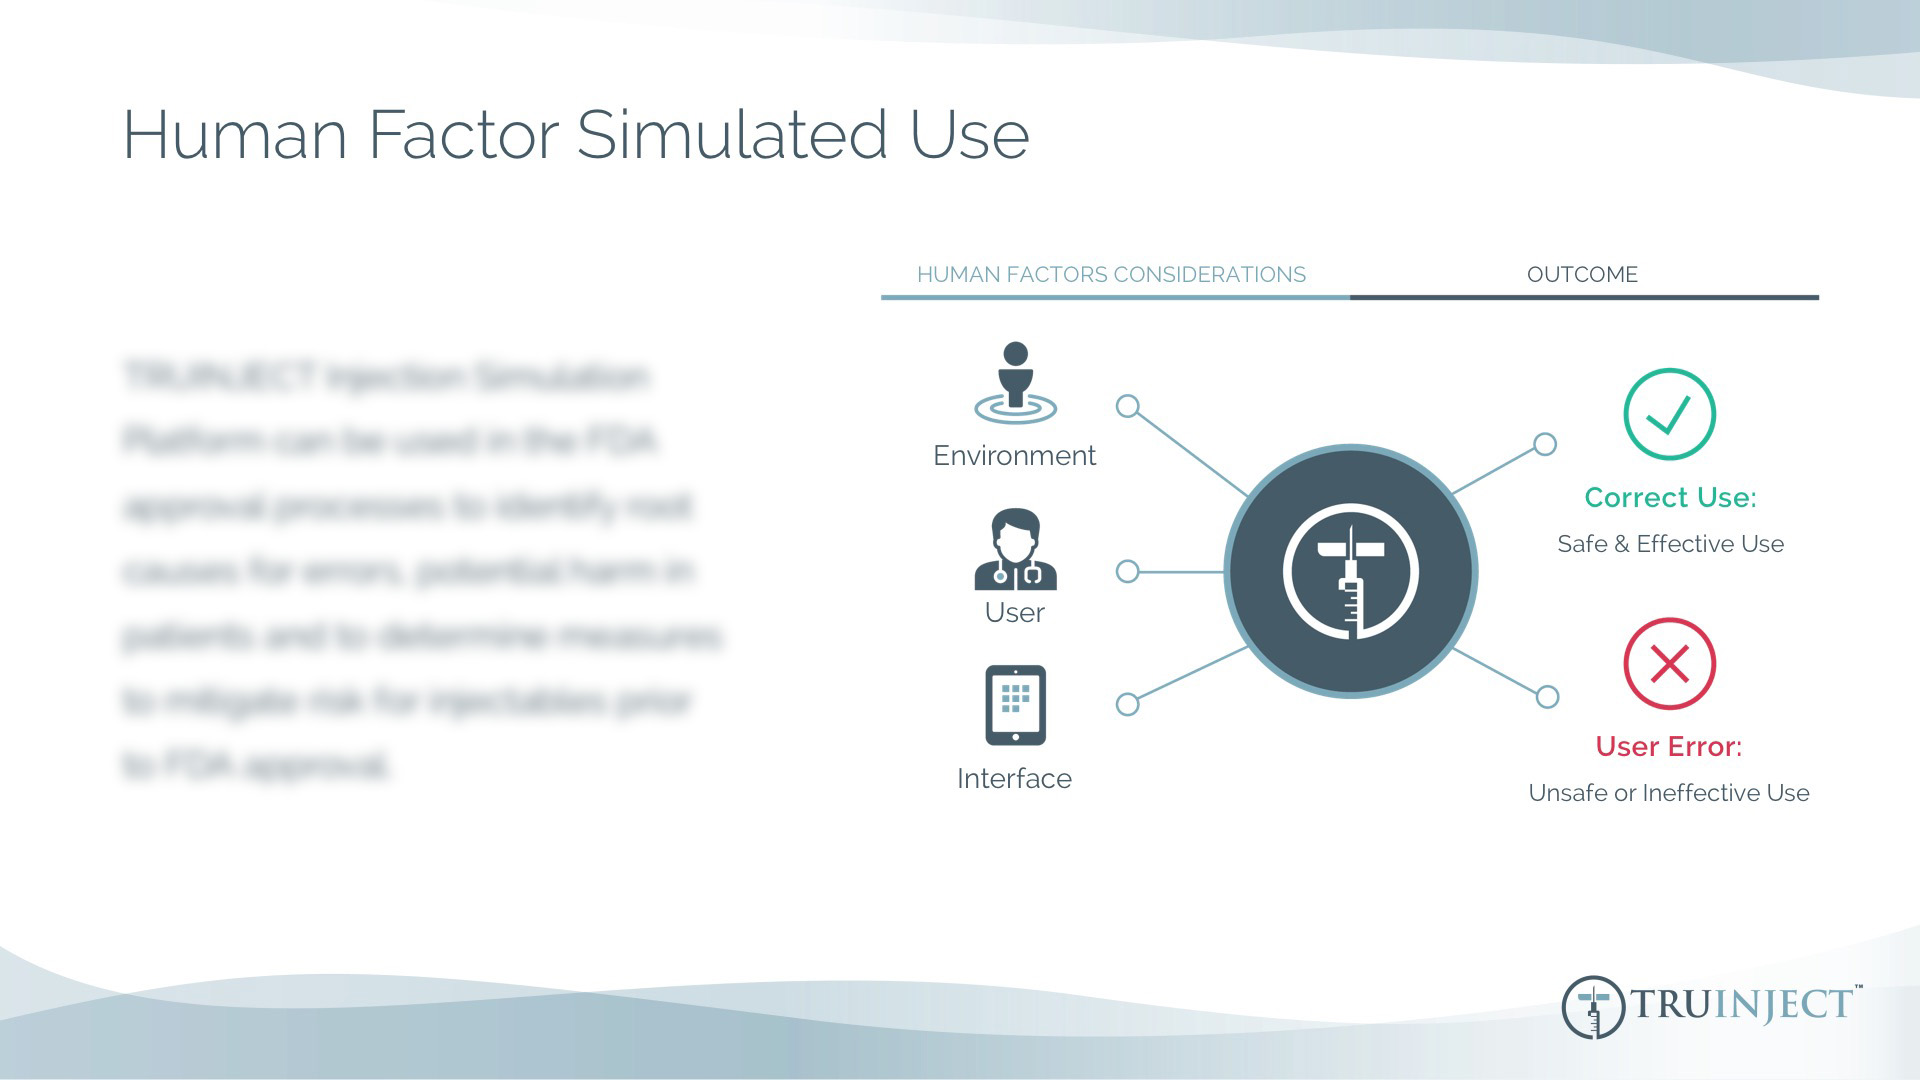 Truinject Corporate Deck - Human Factor Simulated Use Illustration